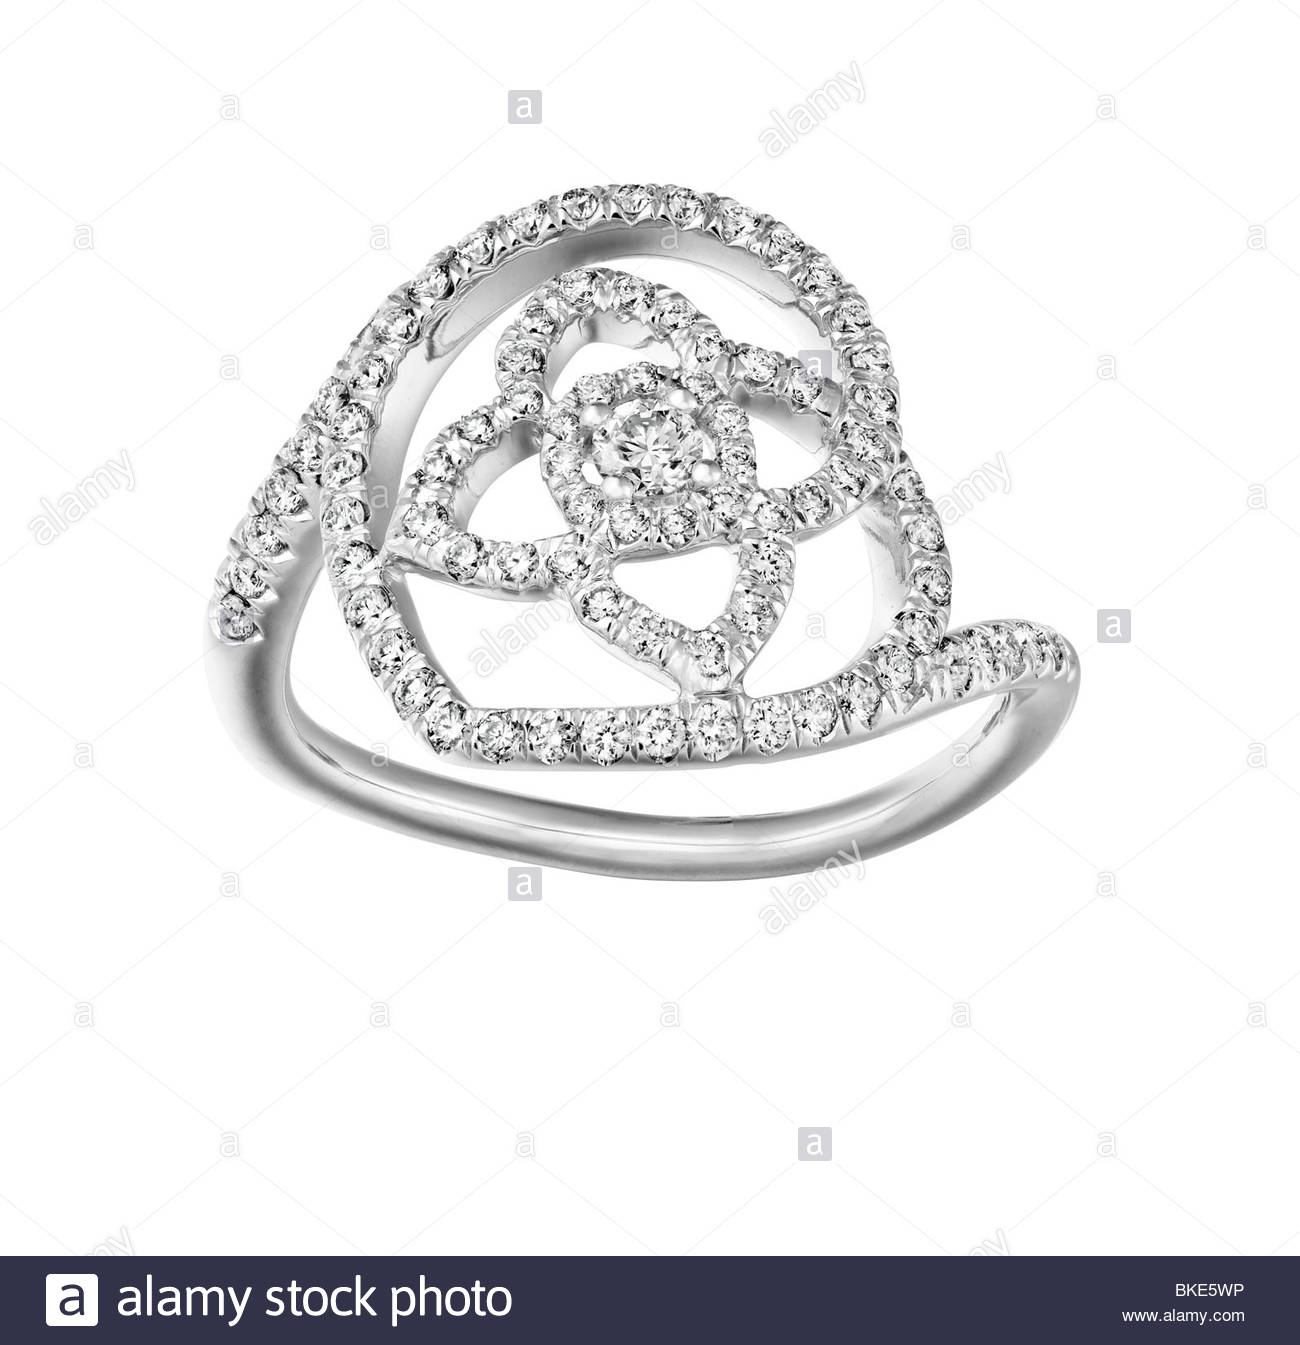 white gold and diamond ring - Stock Image